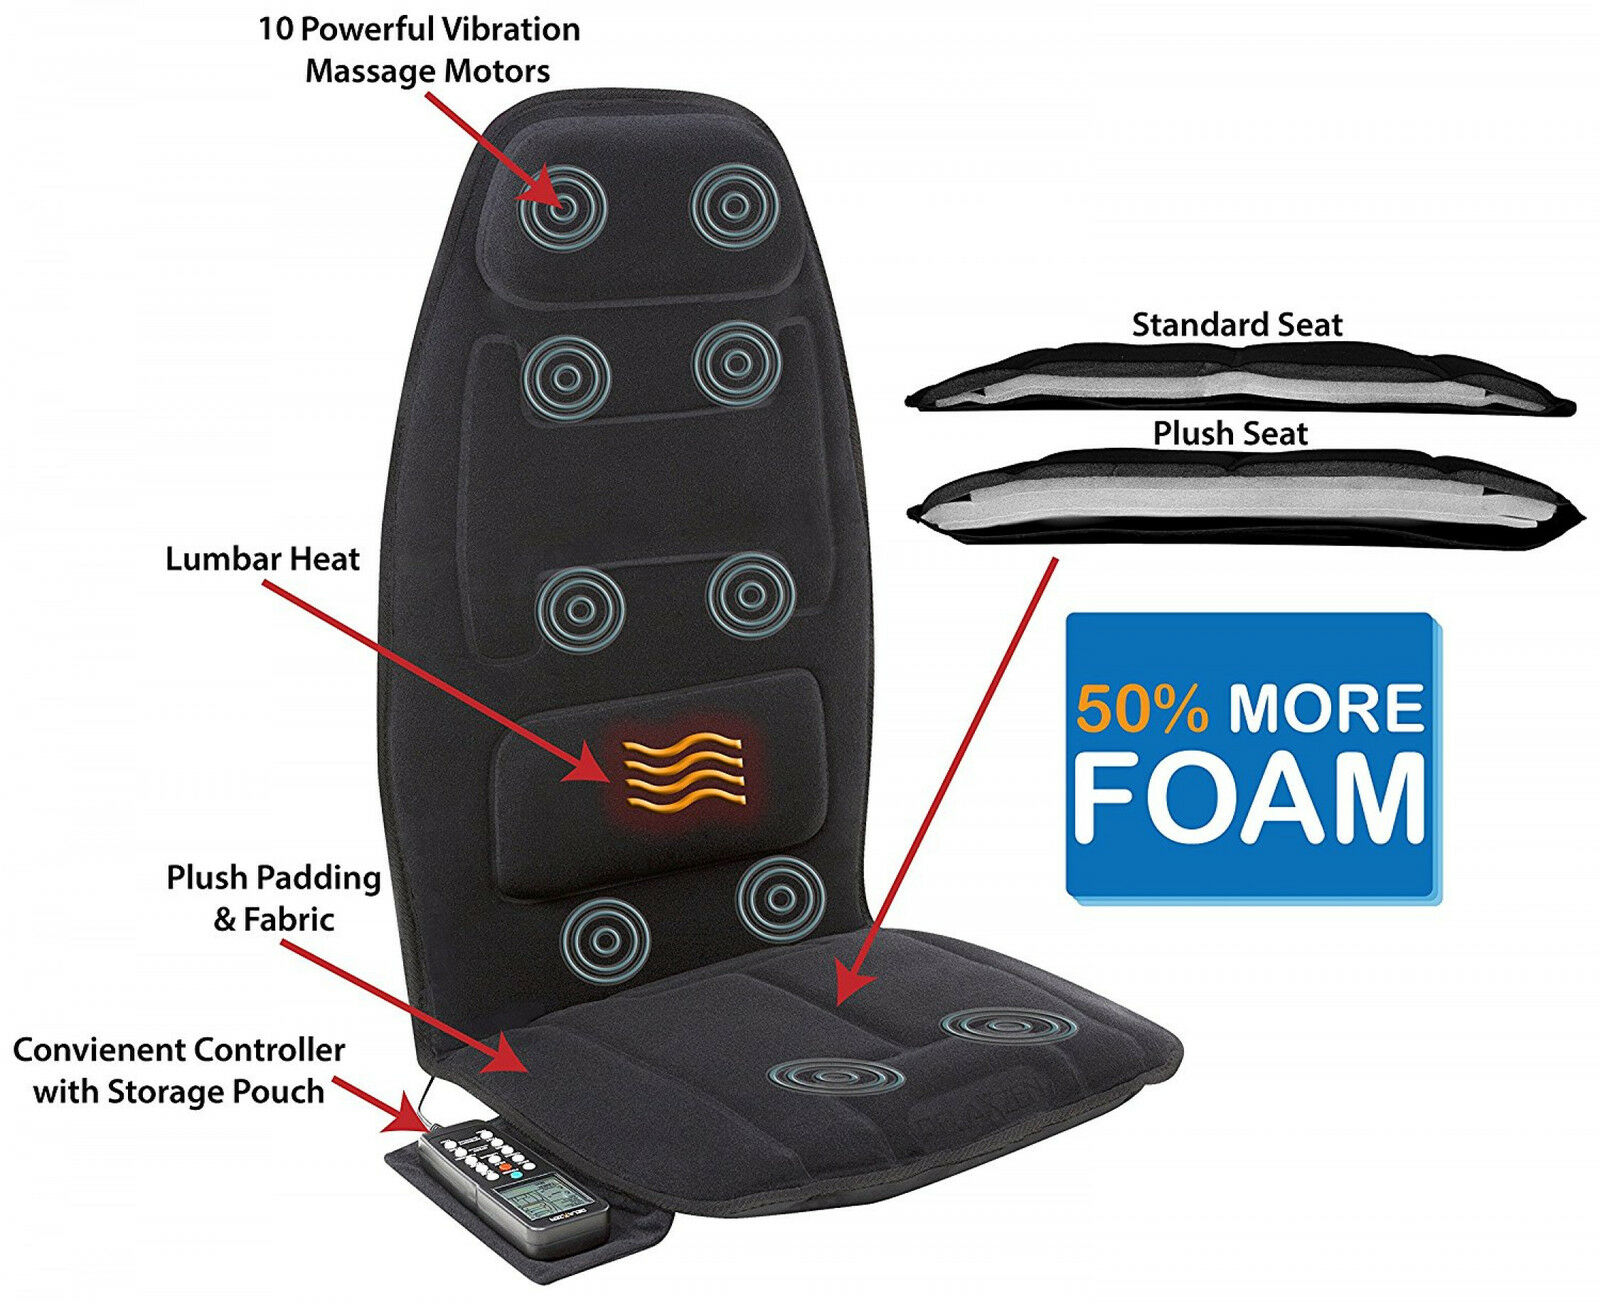 massage chair for car. picture 1 of 10 massage chair for car d